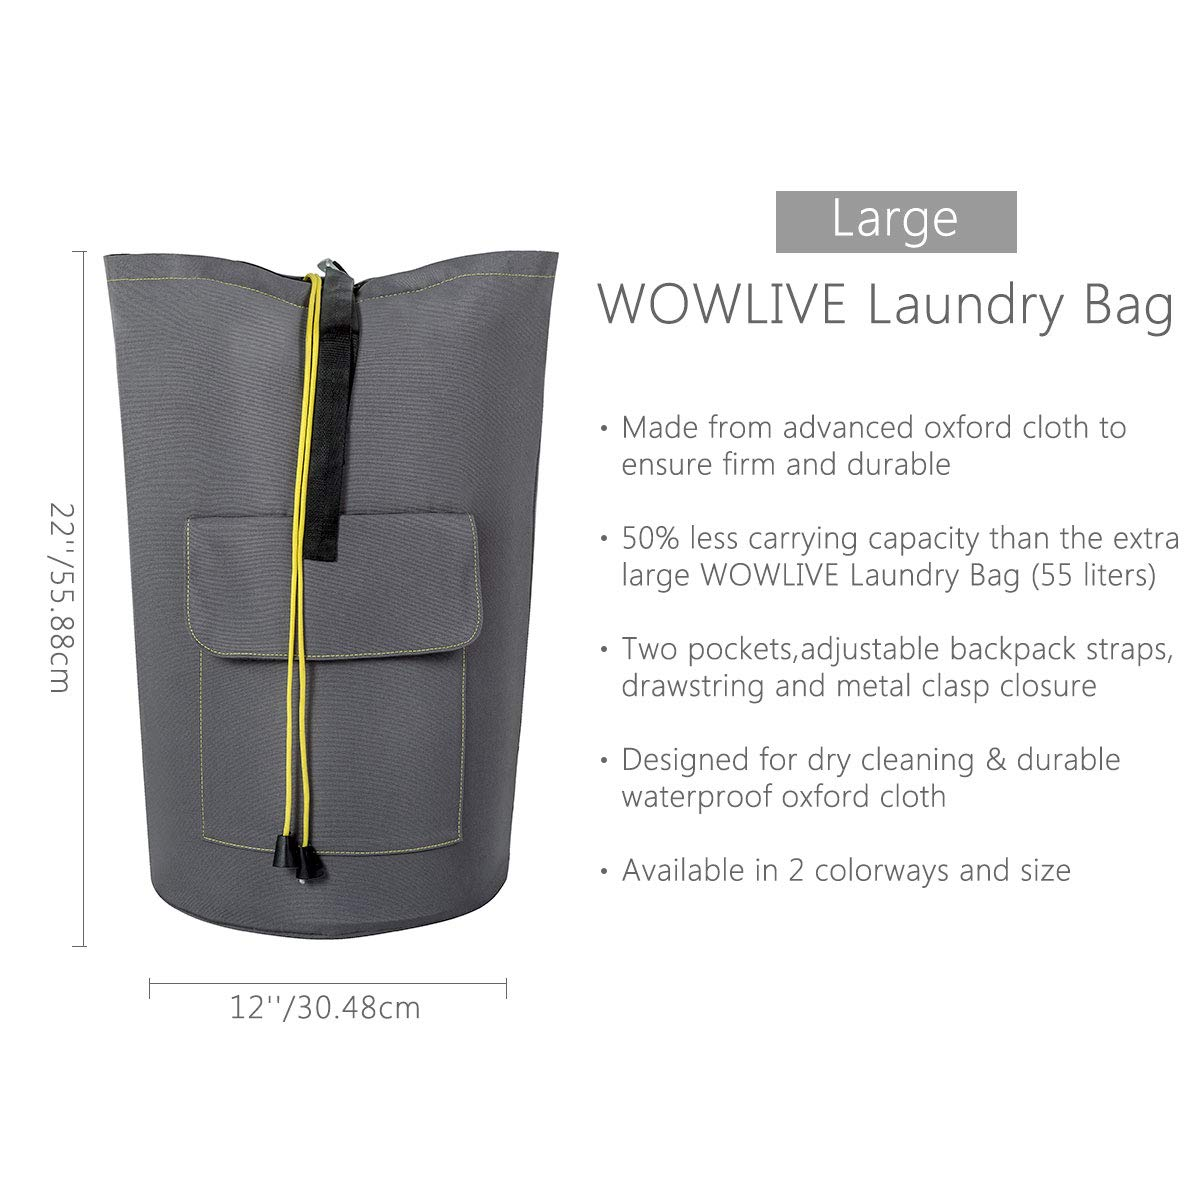 Amazon.com  WOWLIVE Large Laundry Bag Laundry Backpack Hanging Laundry  Hamper Adjustable Shoulder Straps Camping Bag Waterproof Durable Travel  Collage ... 407762f8cd20f